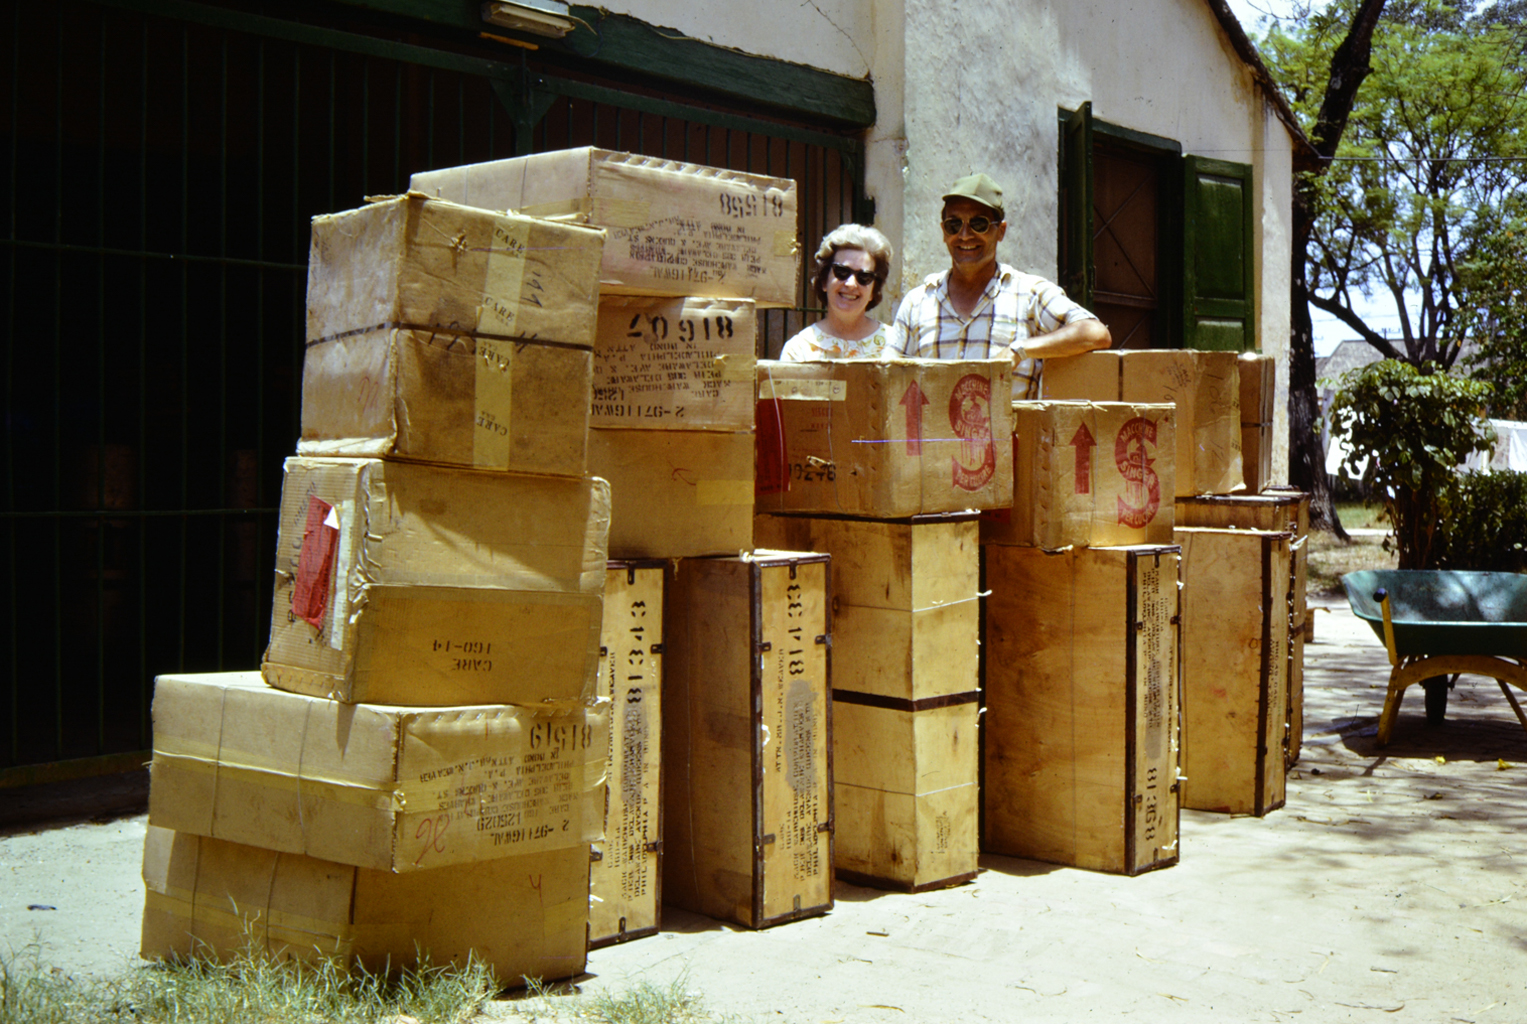 VN 3:15 Mr. and Mrs. Wiwcharuck with supplies.jpg